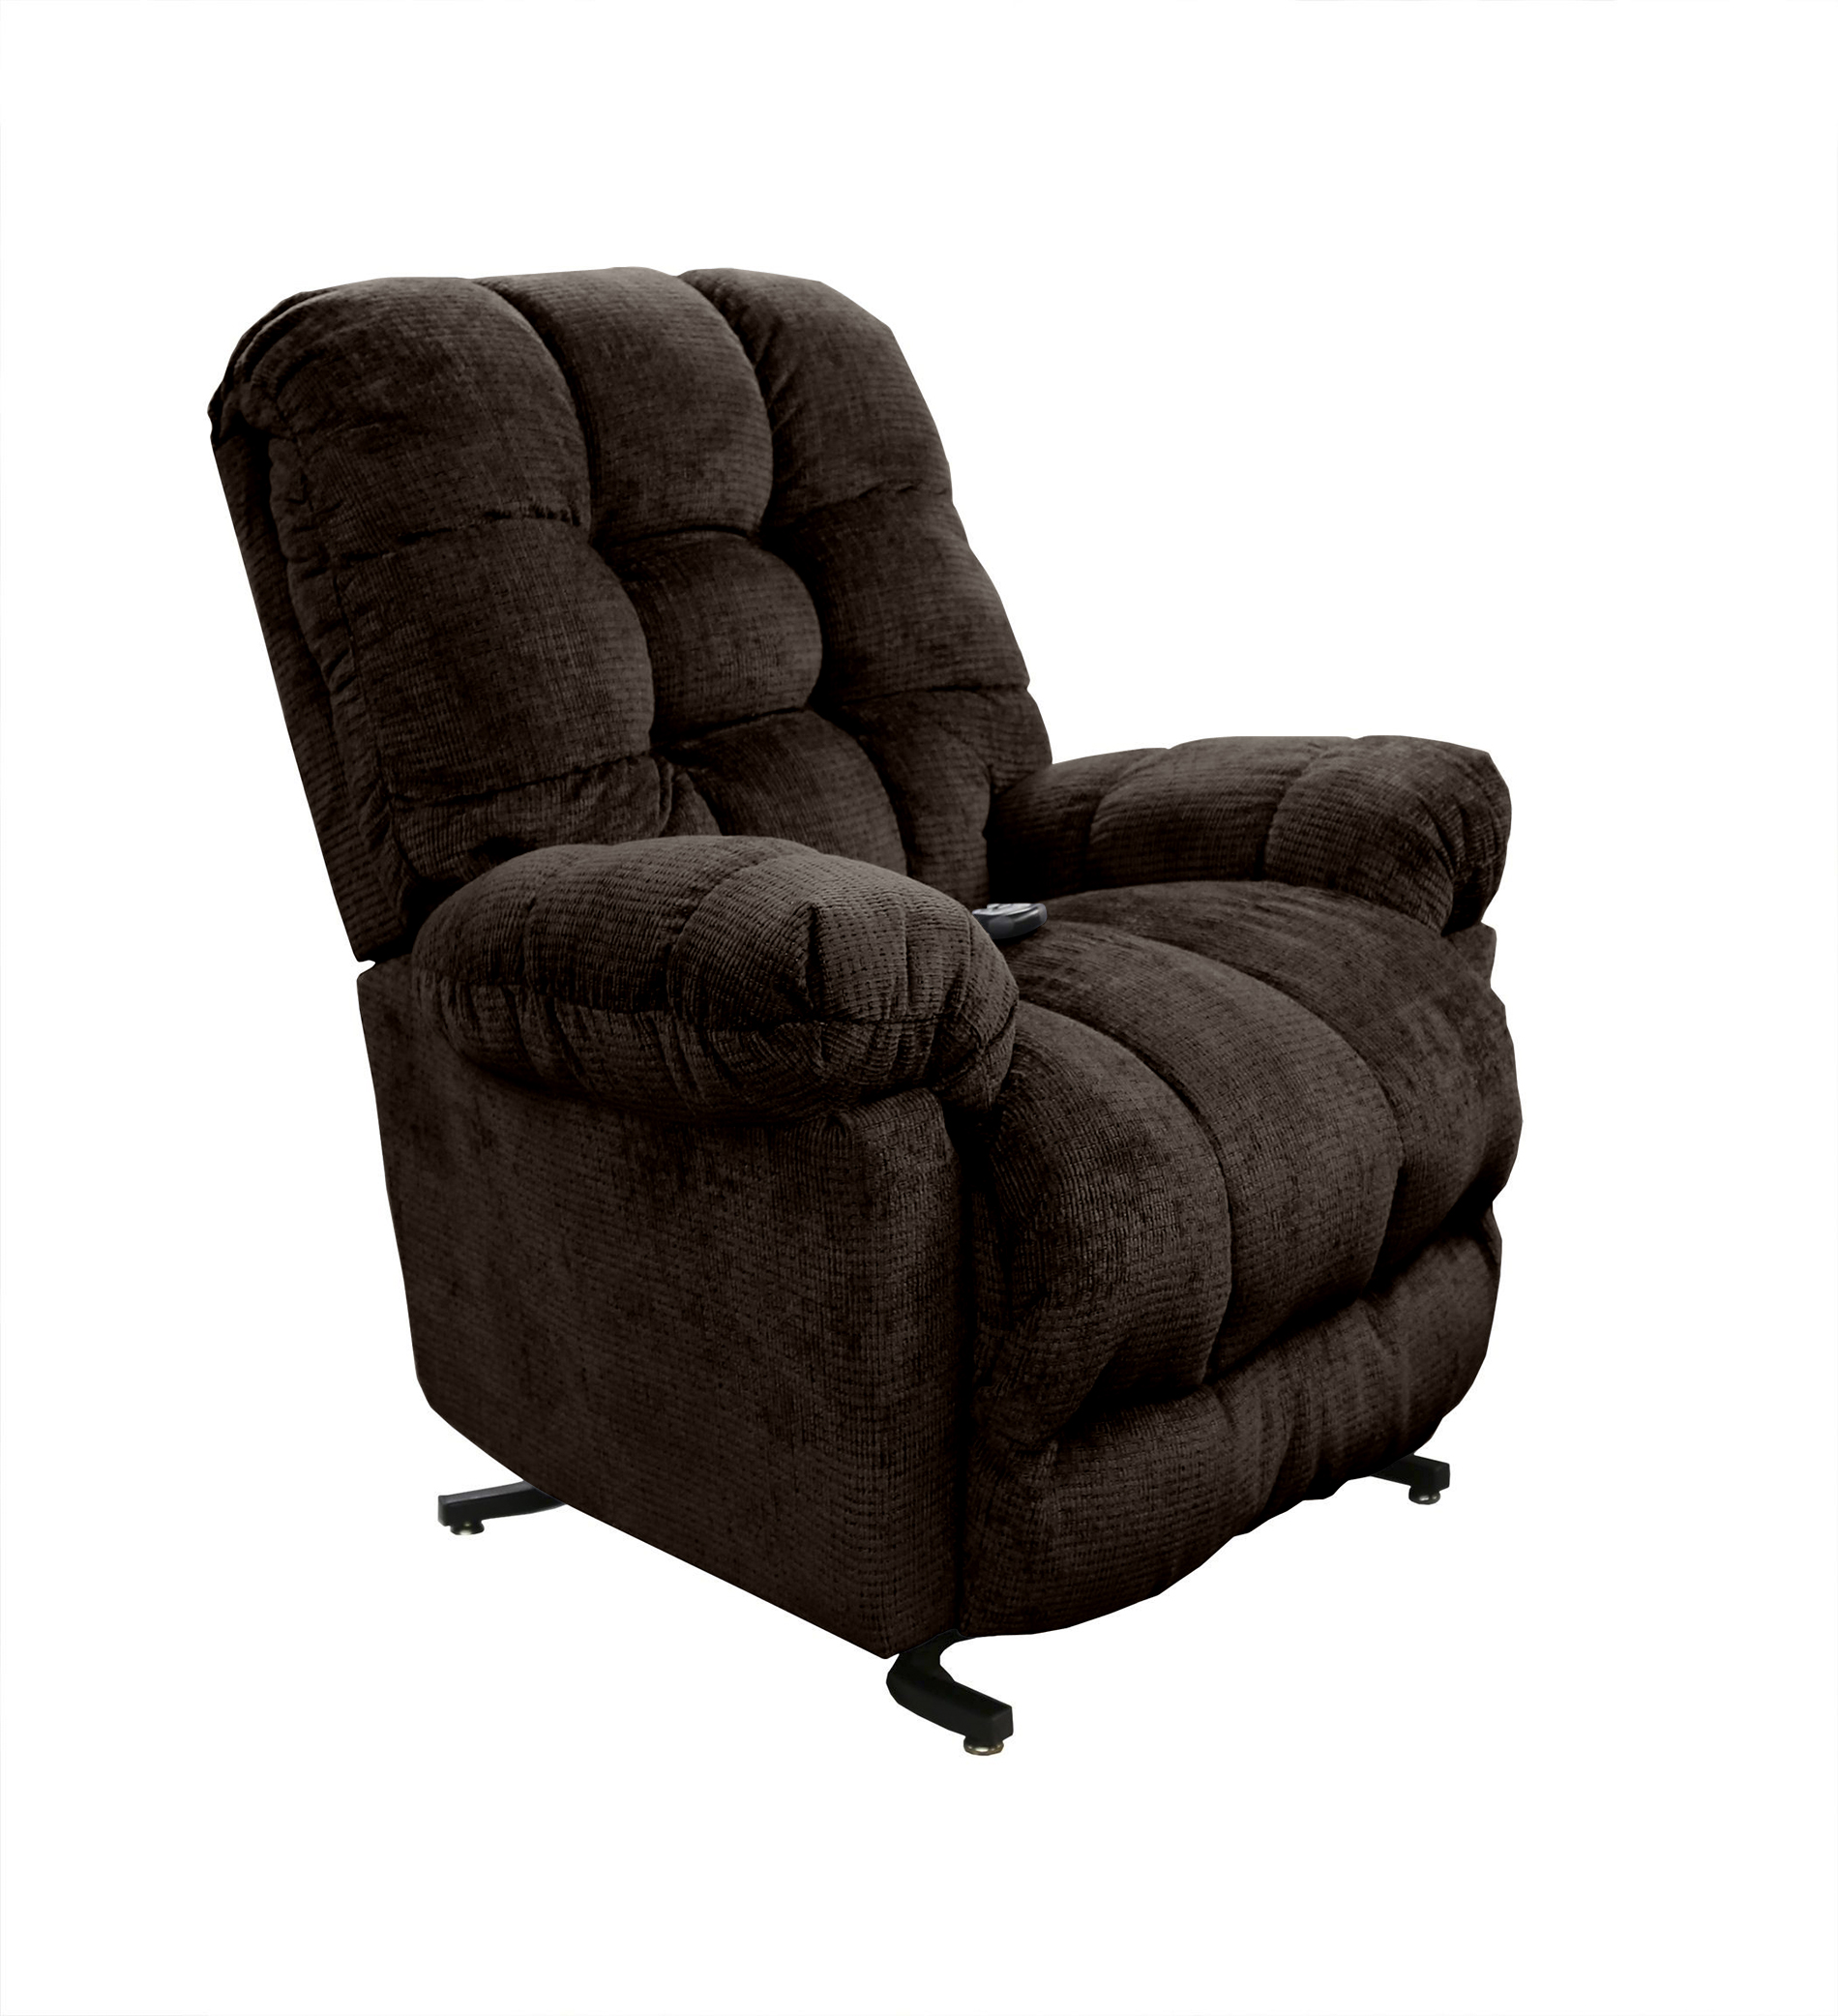 power lift chair recliner sure fit dining covers target best home furnishings revere chocolate